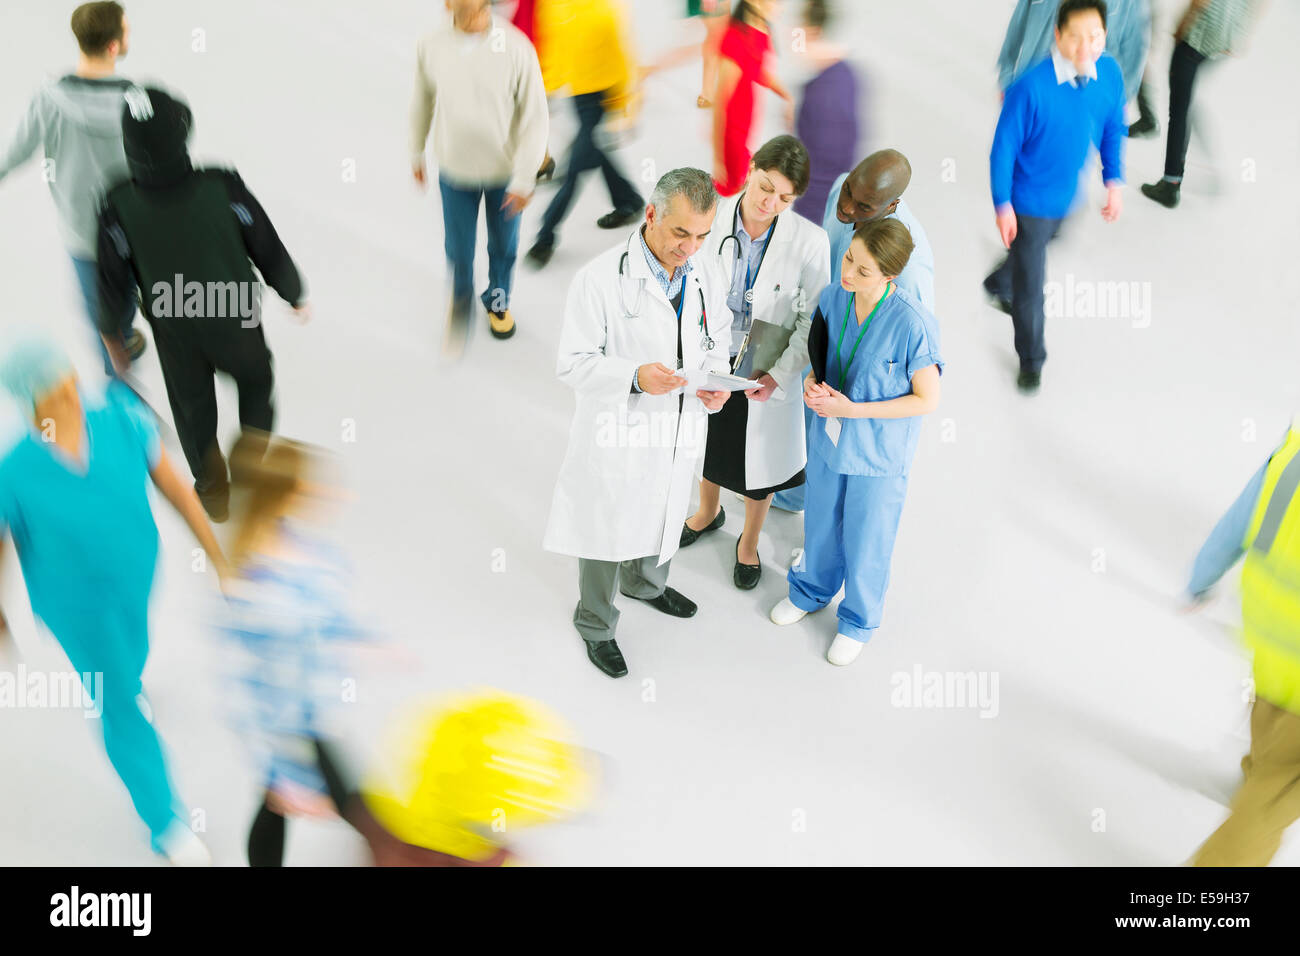 Bustling crowd around doctors and nurses - Stock Image